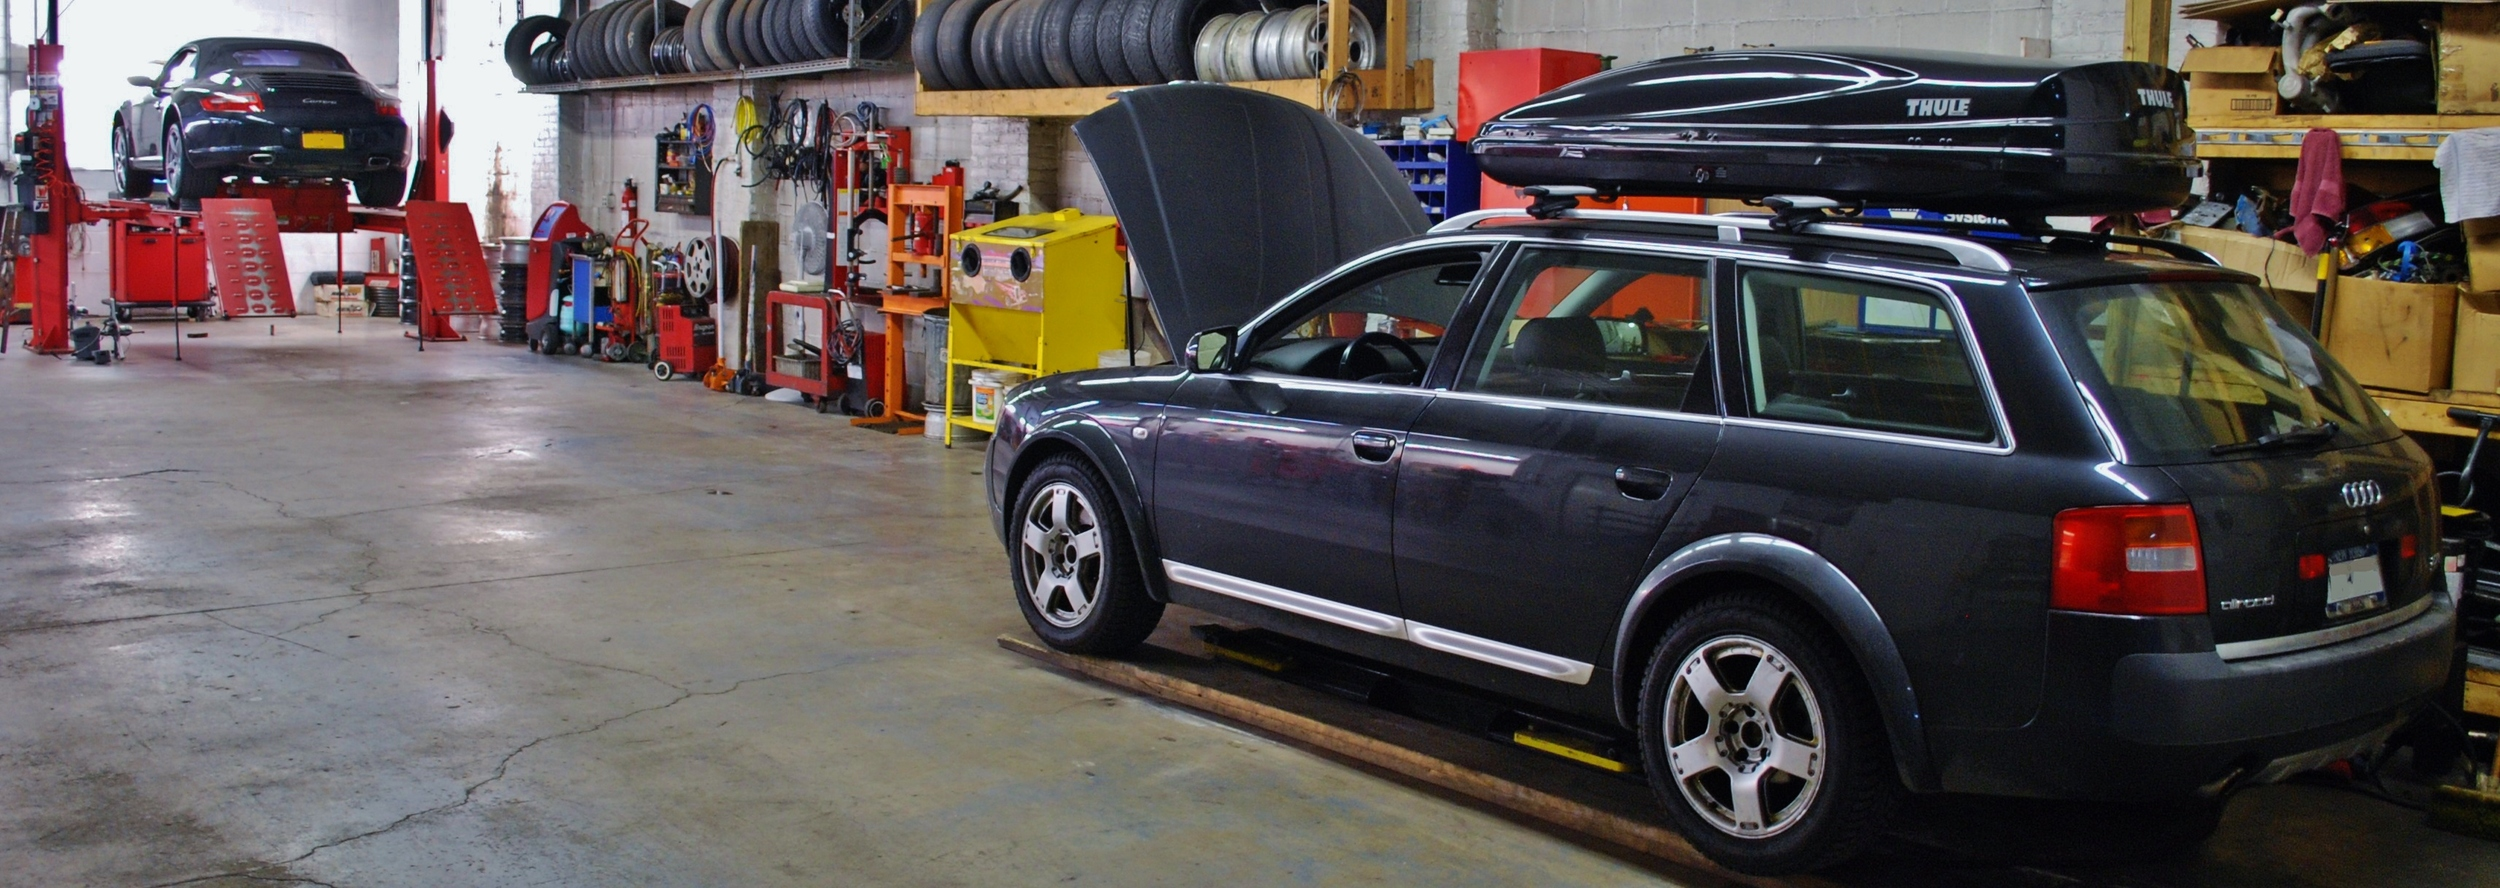 Allroad and cab in shop.jpg